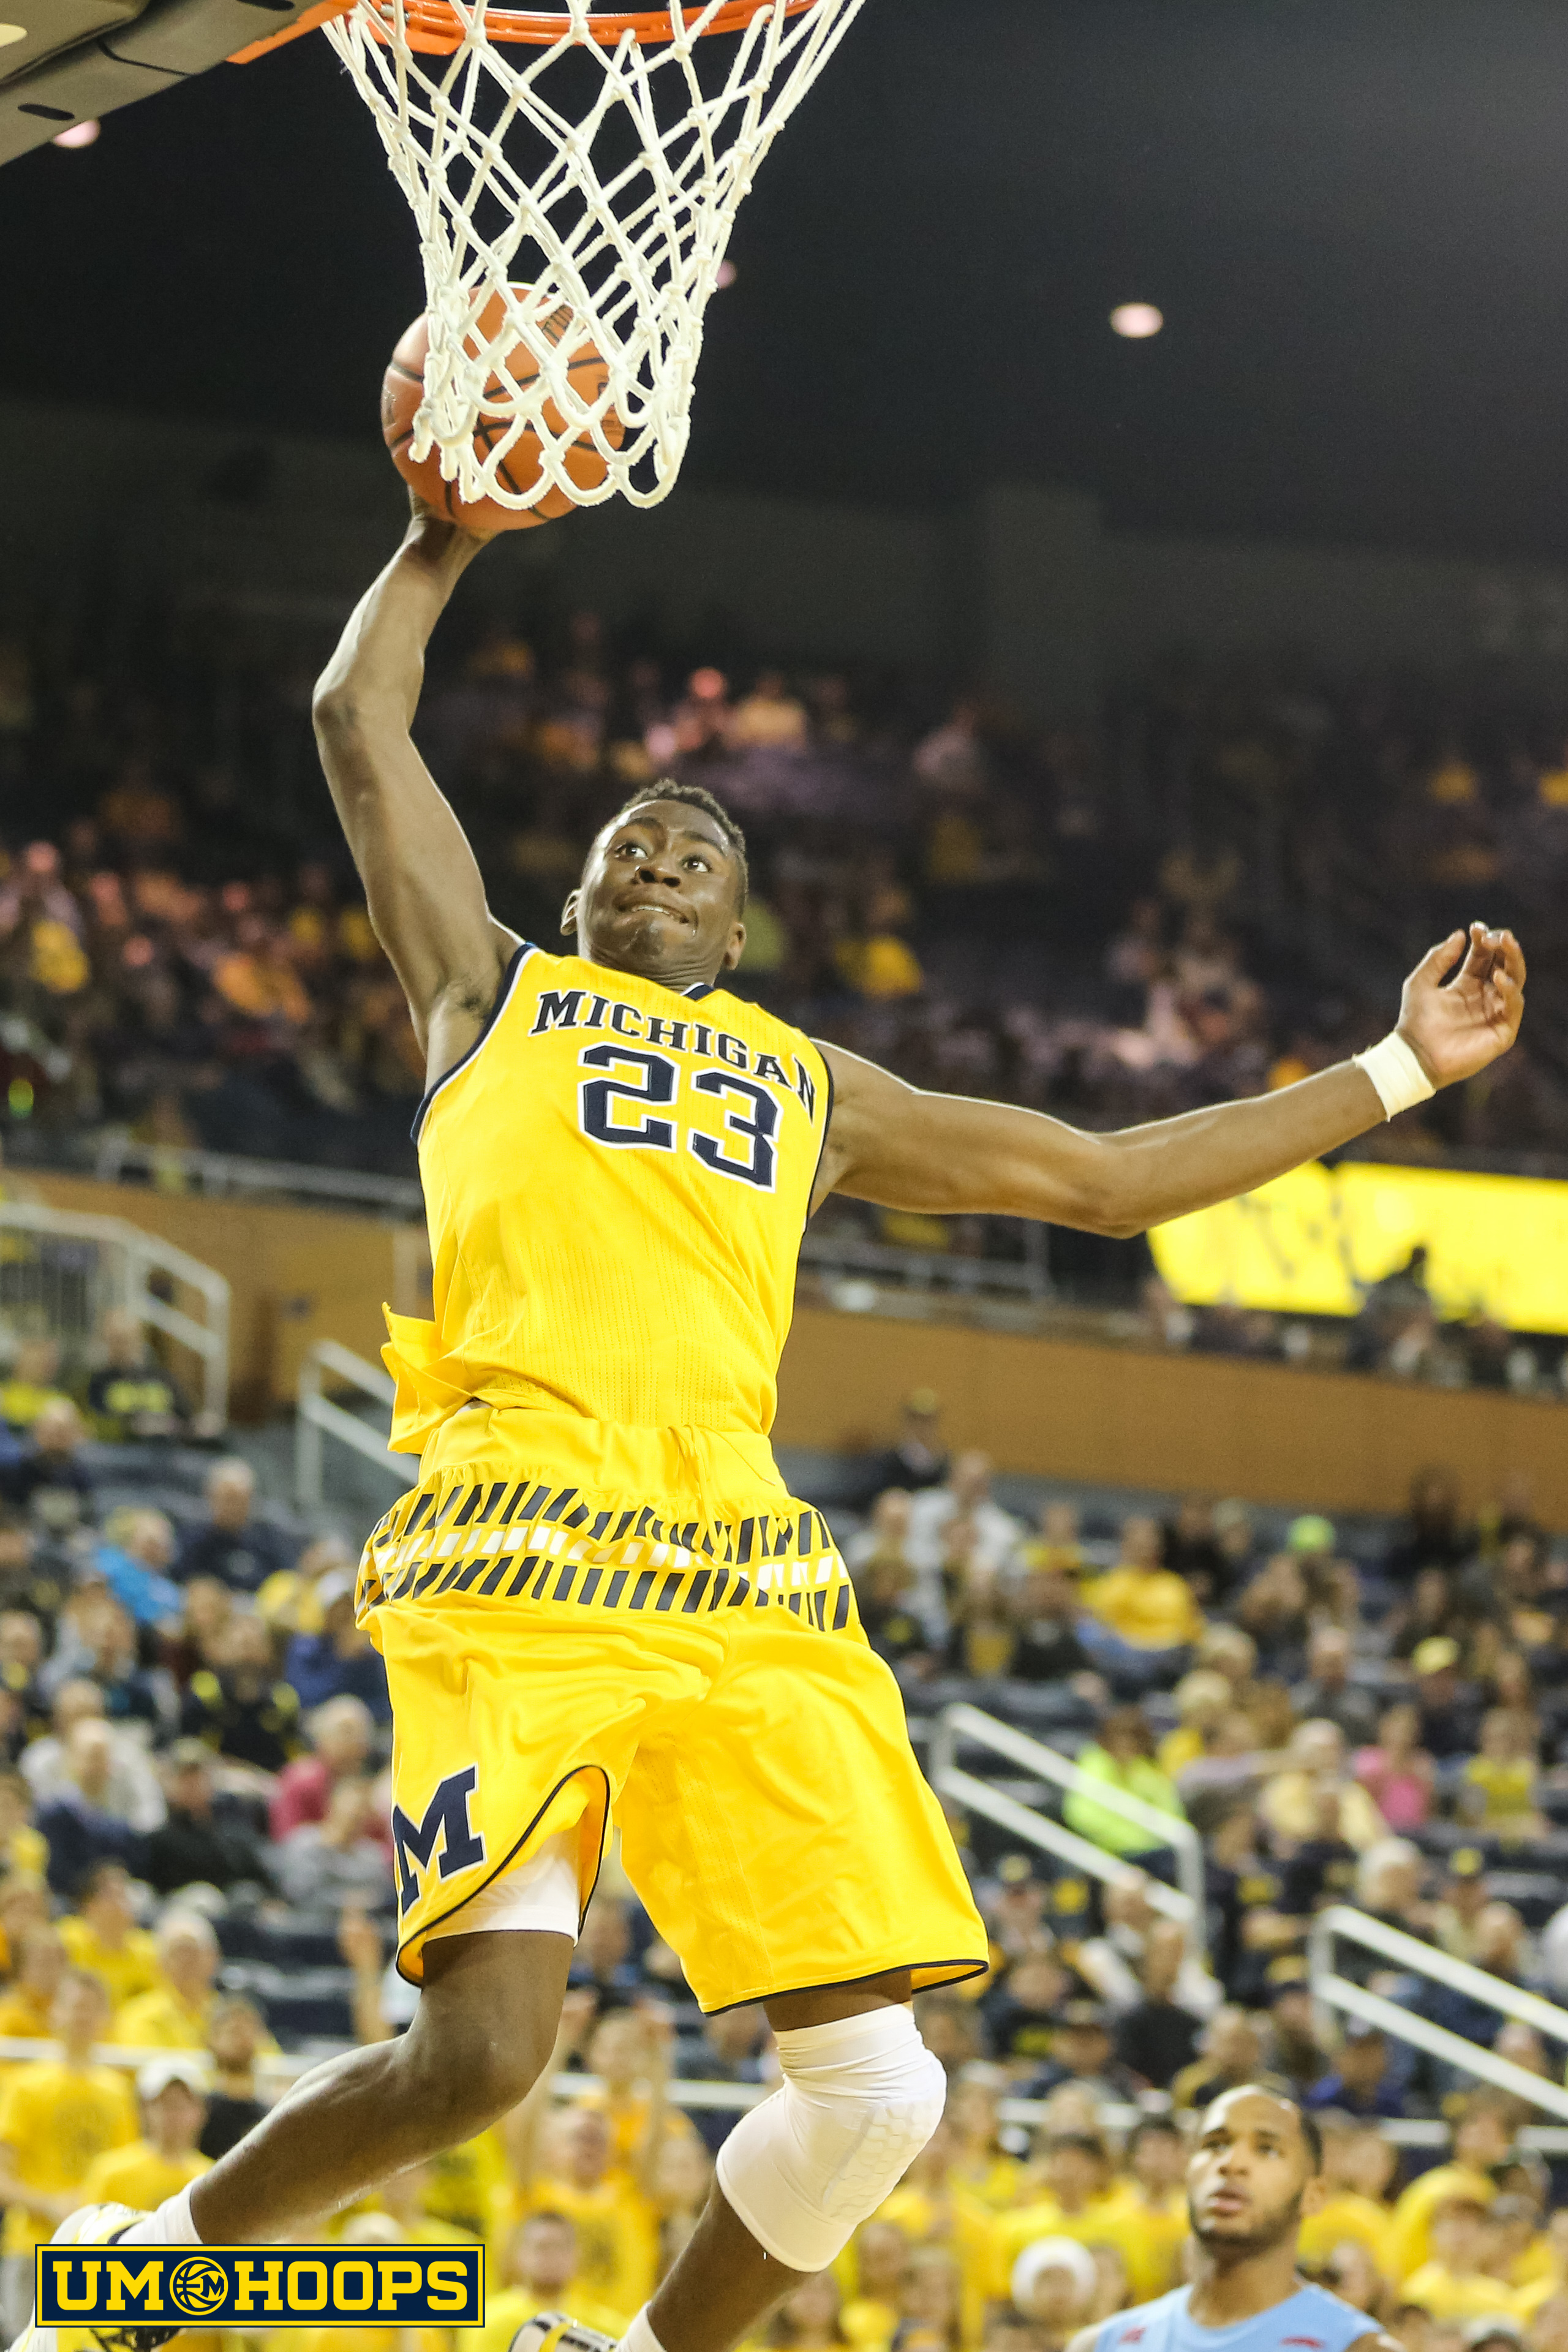 Michigan 80, Delaware State 33-23